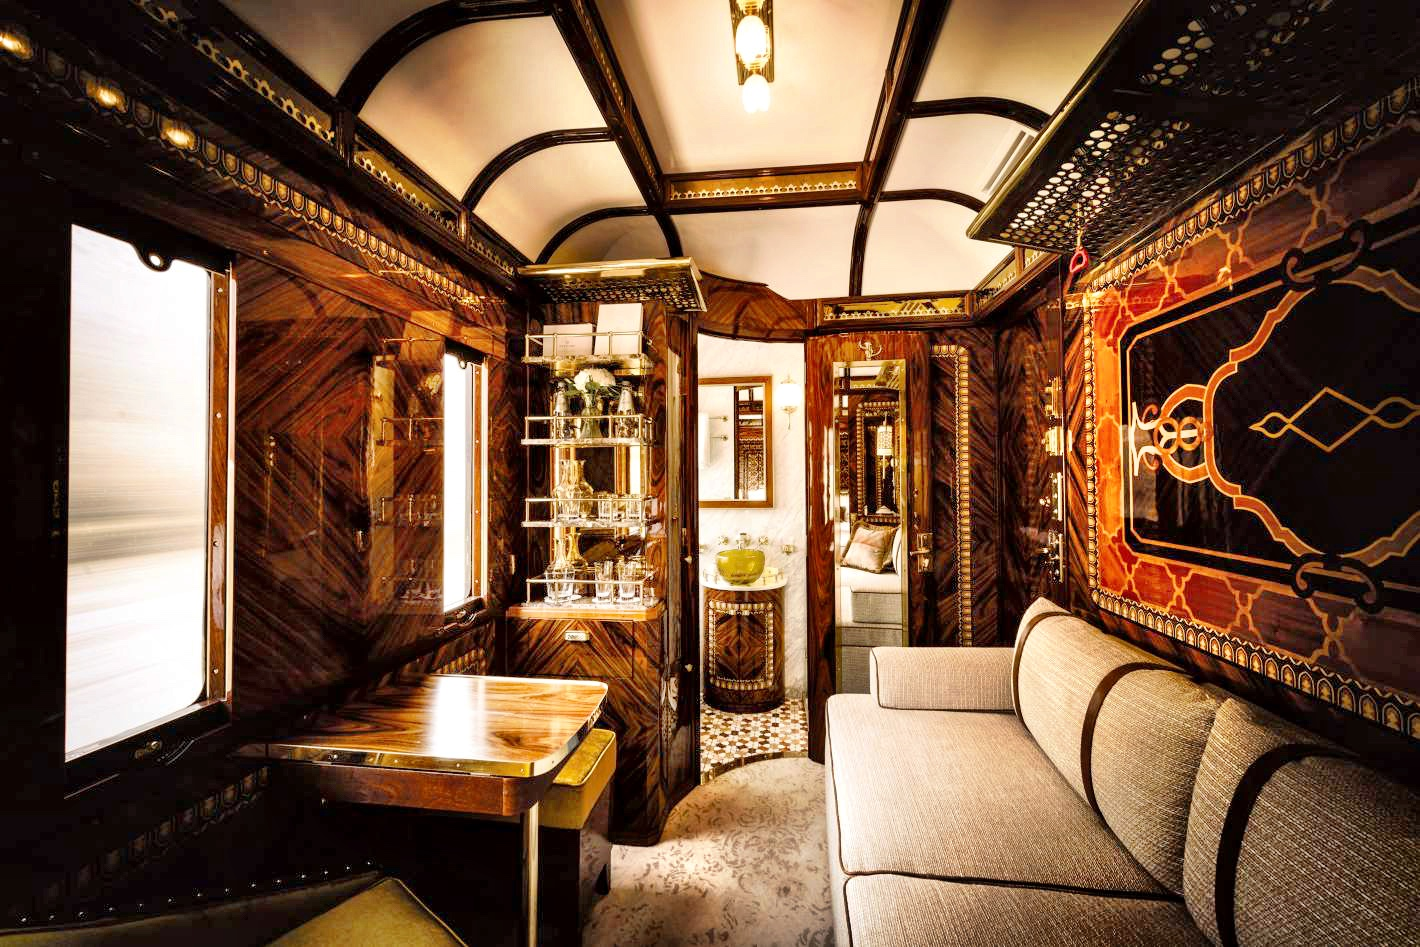 Venice Simplon Orient Express Luxusreisen Travel Blog Reisen400